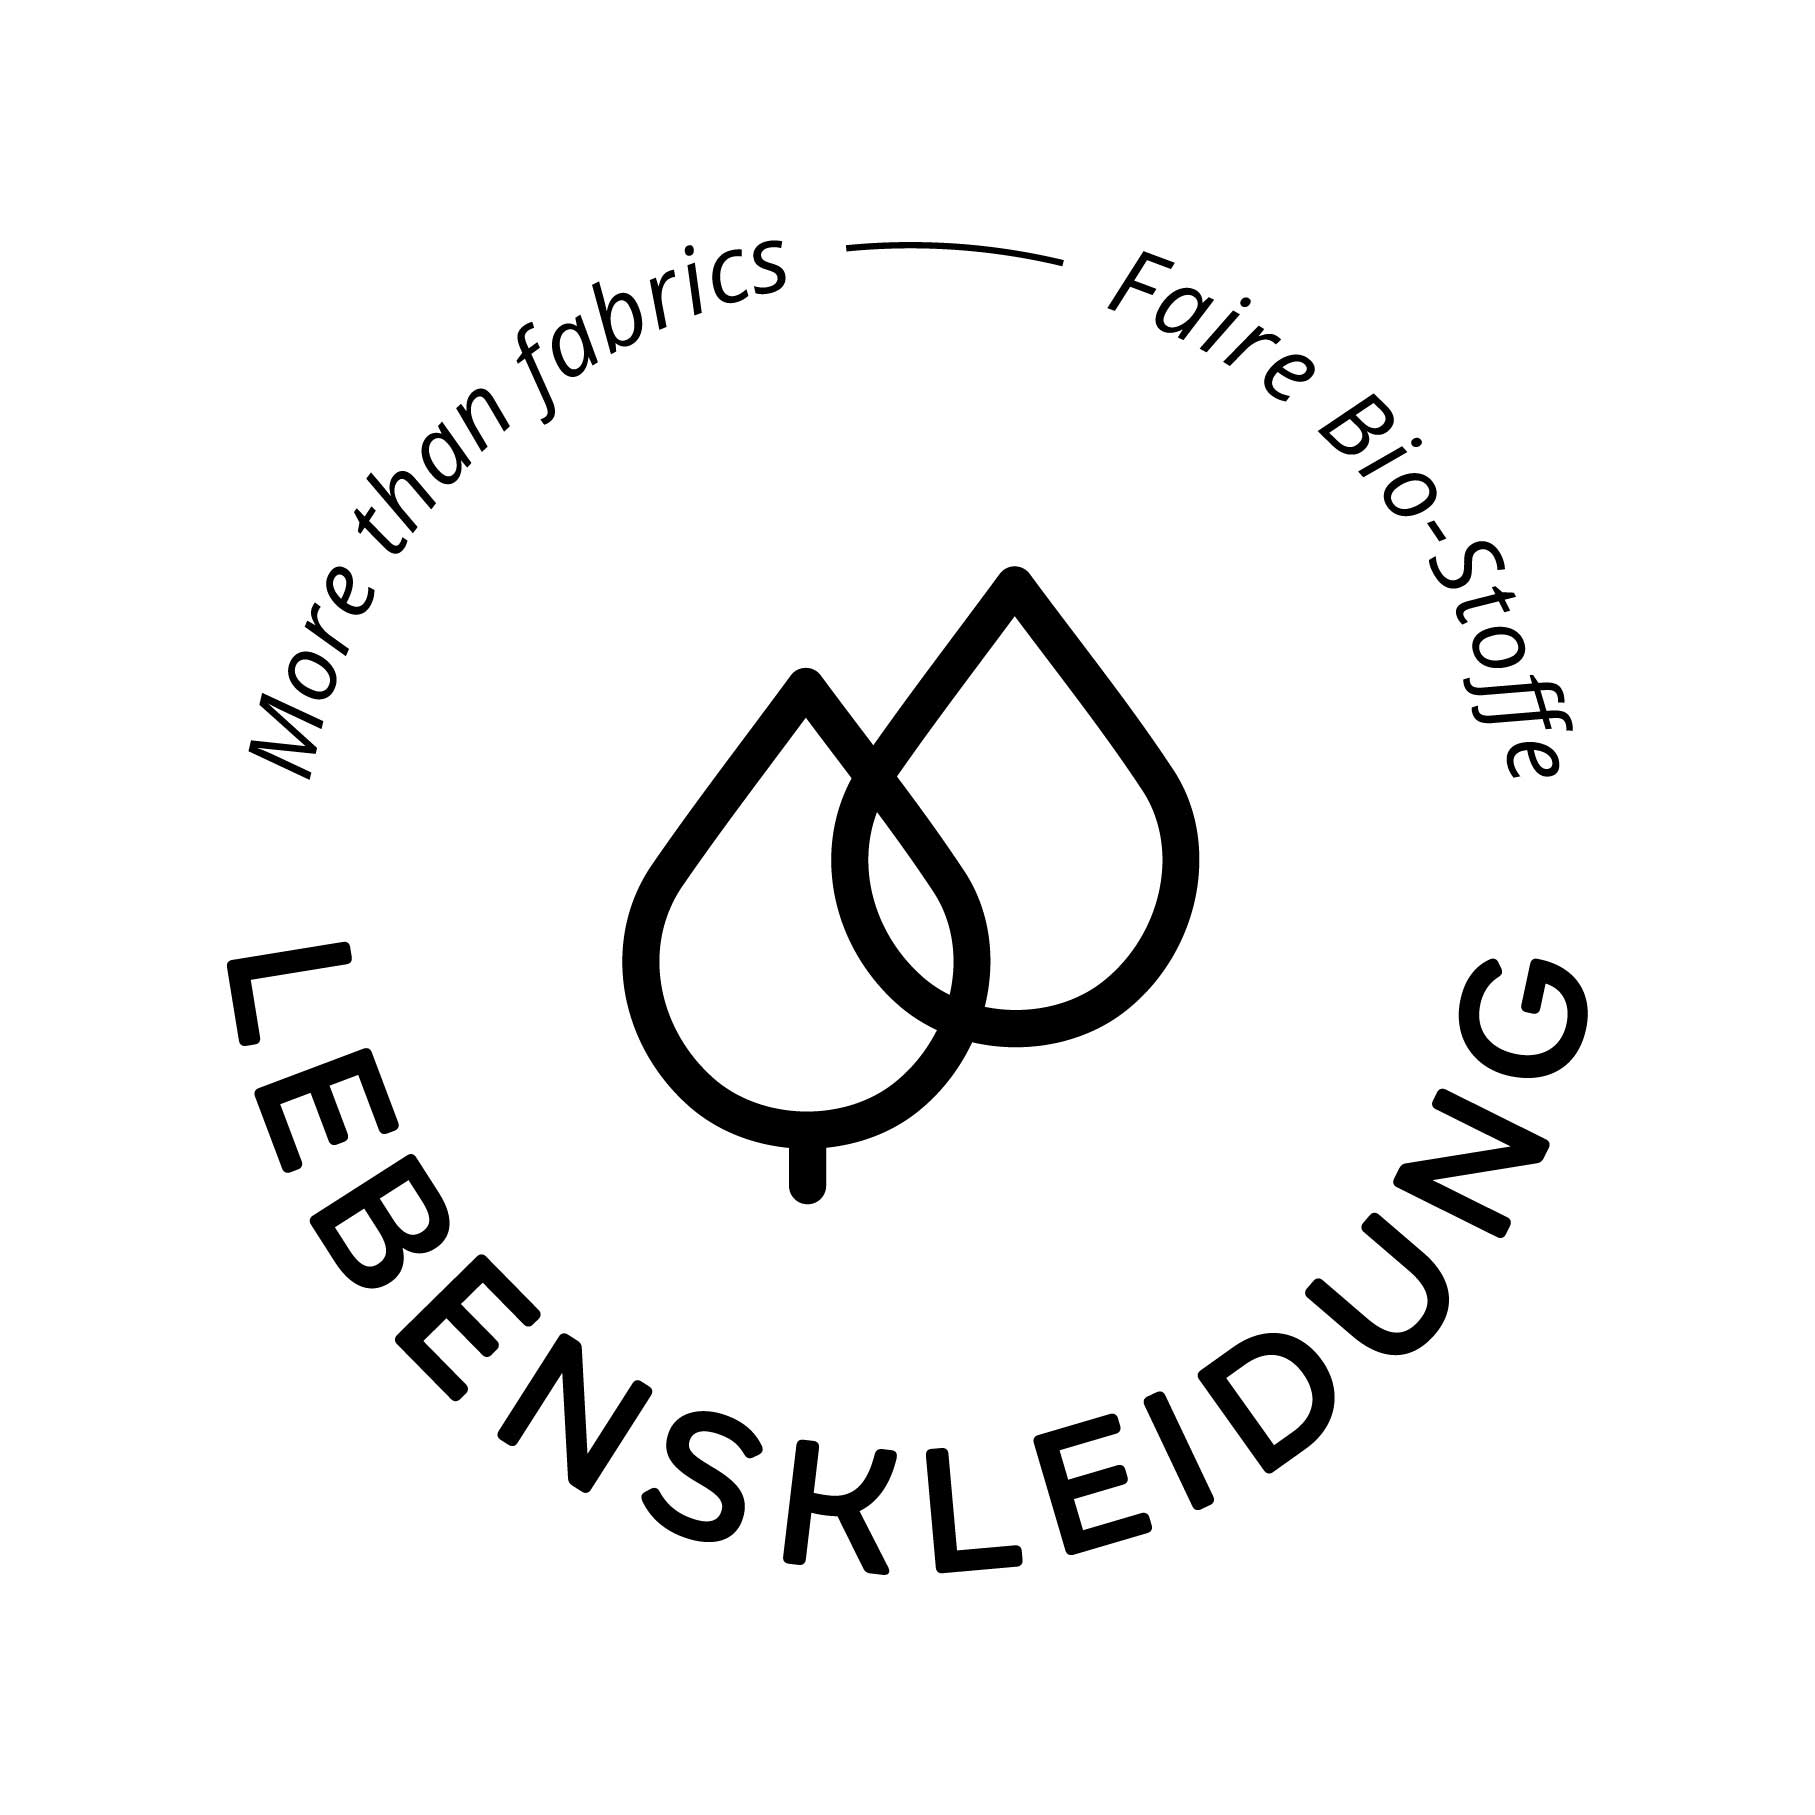 Cotton Rustic Woven - Faded Denim